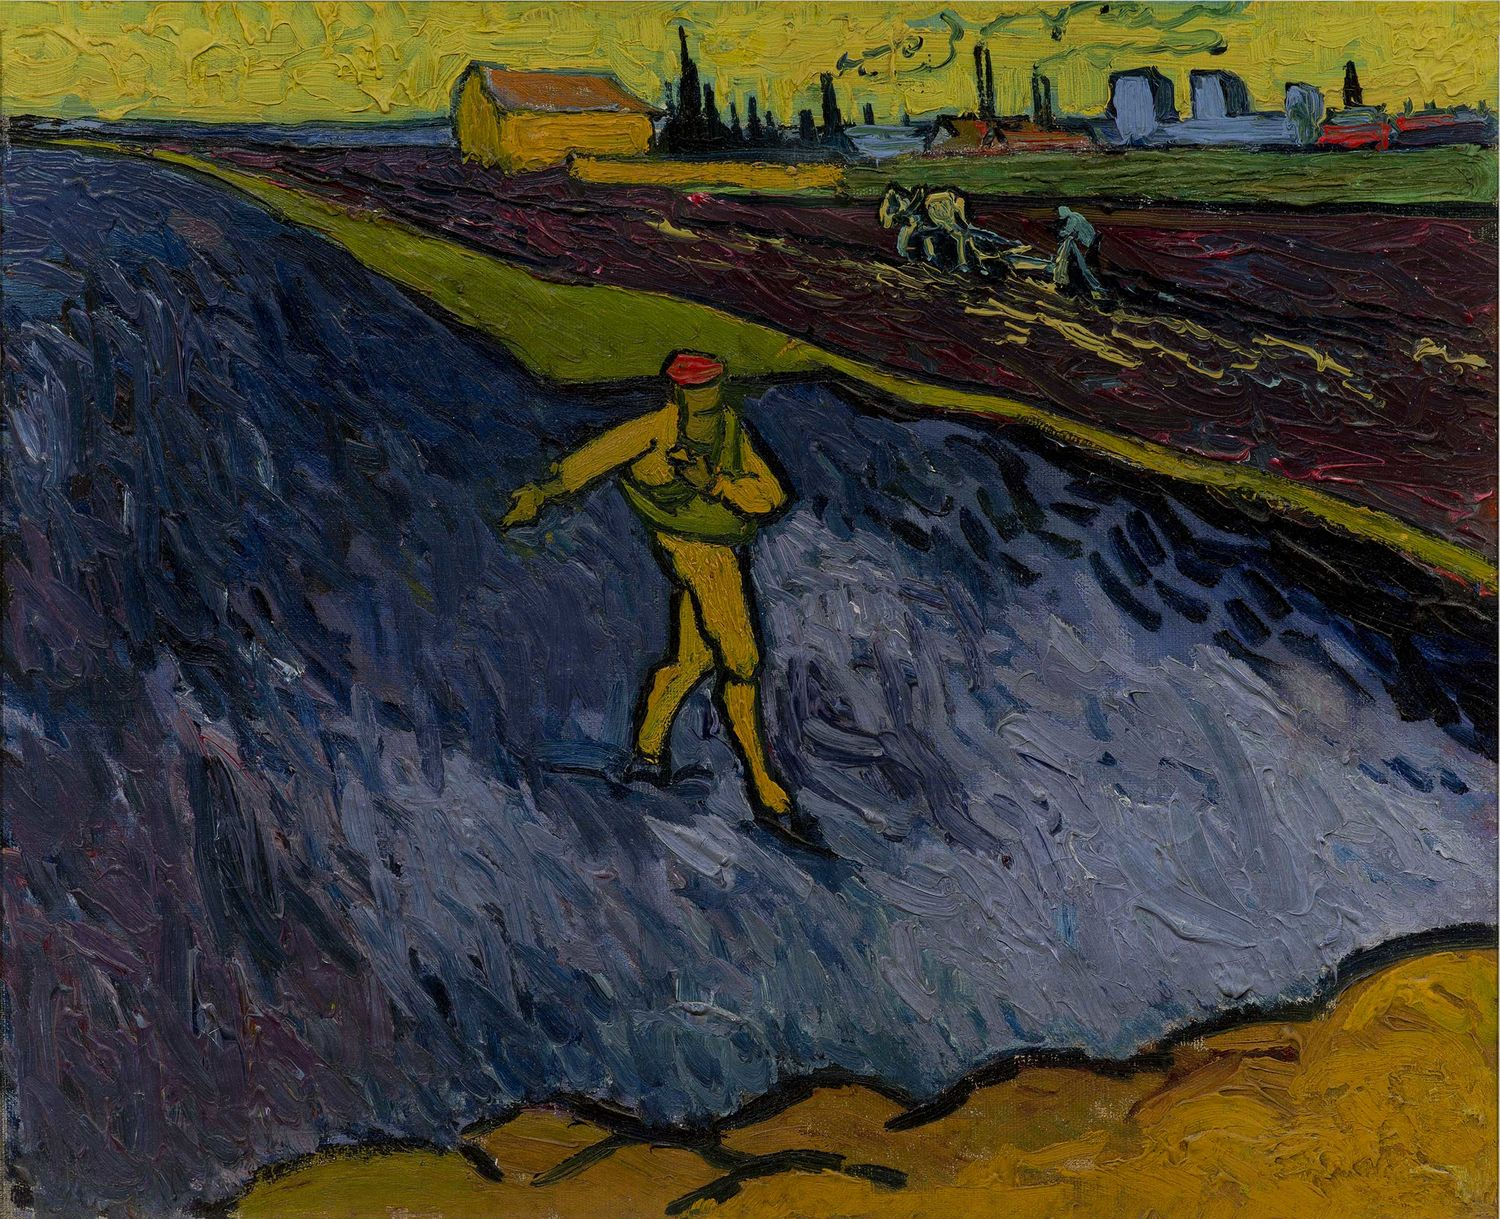 Vincent van Gogh, The Sower, ca 1888. The Armand Hammer Collection, Gift of Dr. Armand Hammer. Hammer Museum, Los Angeles.